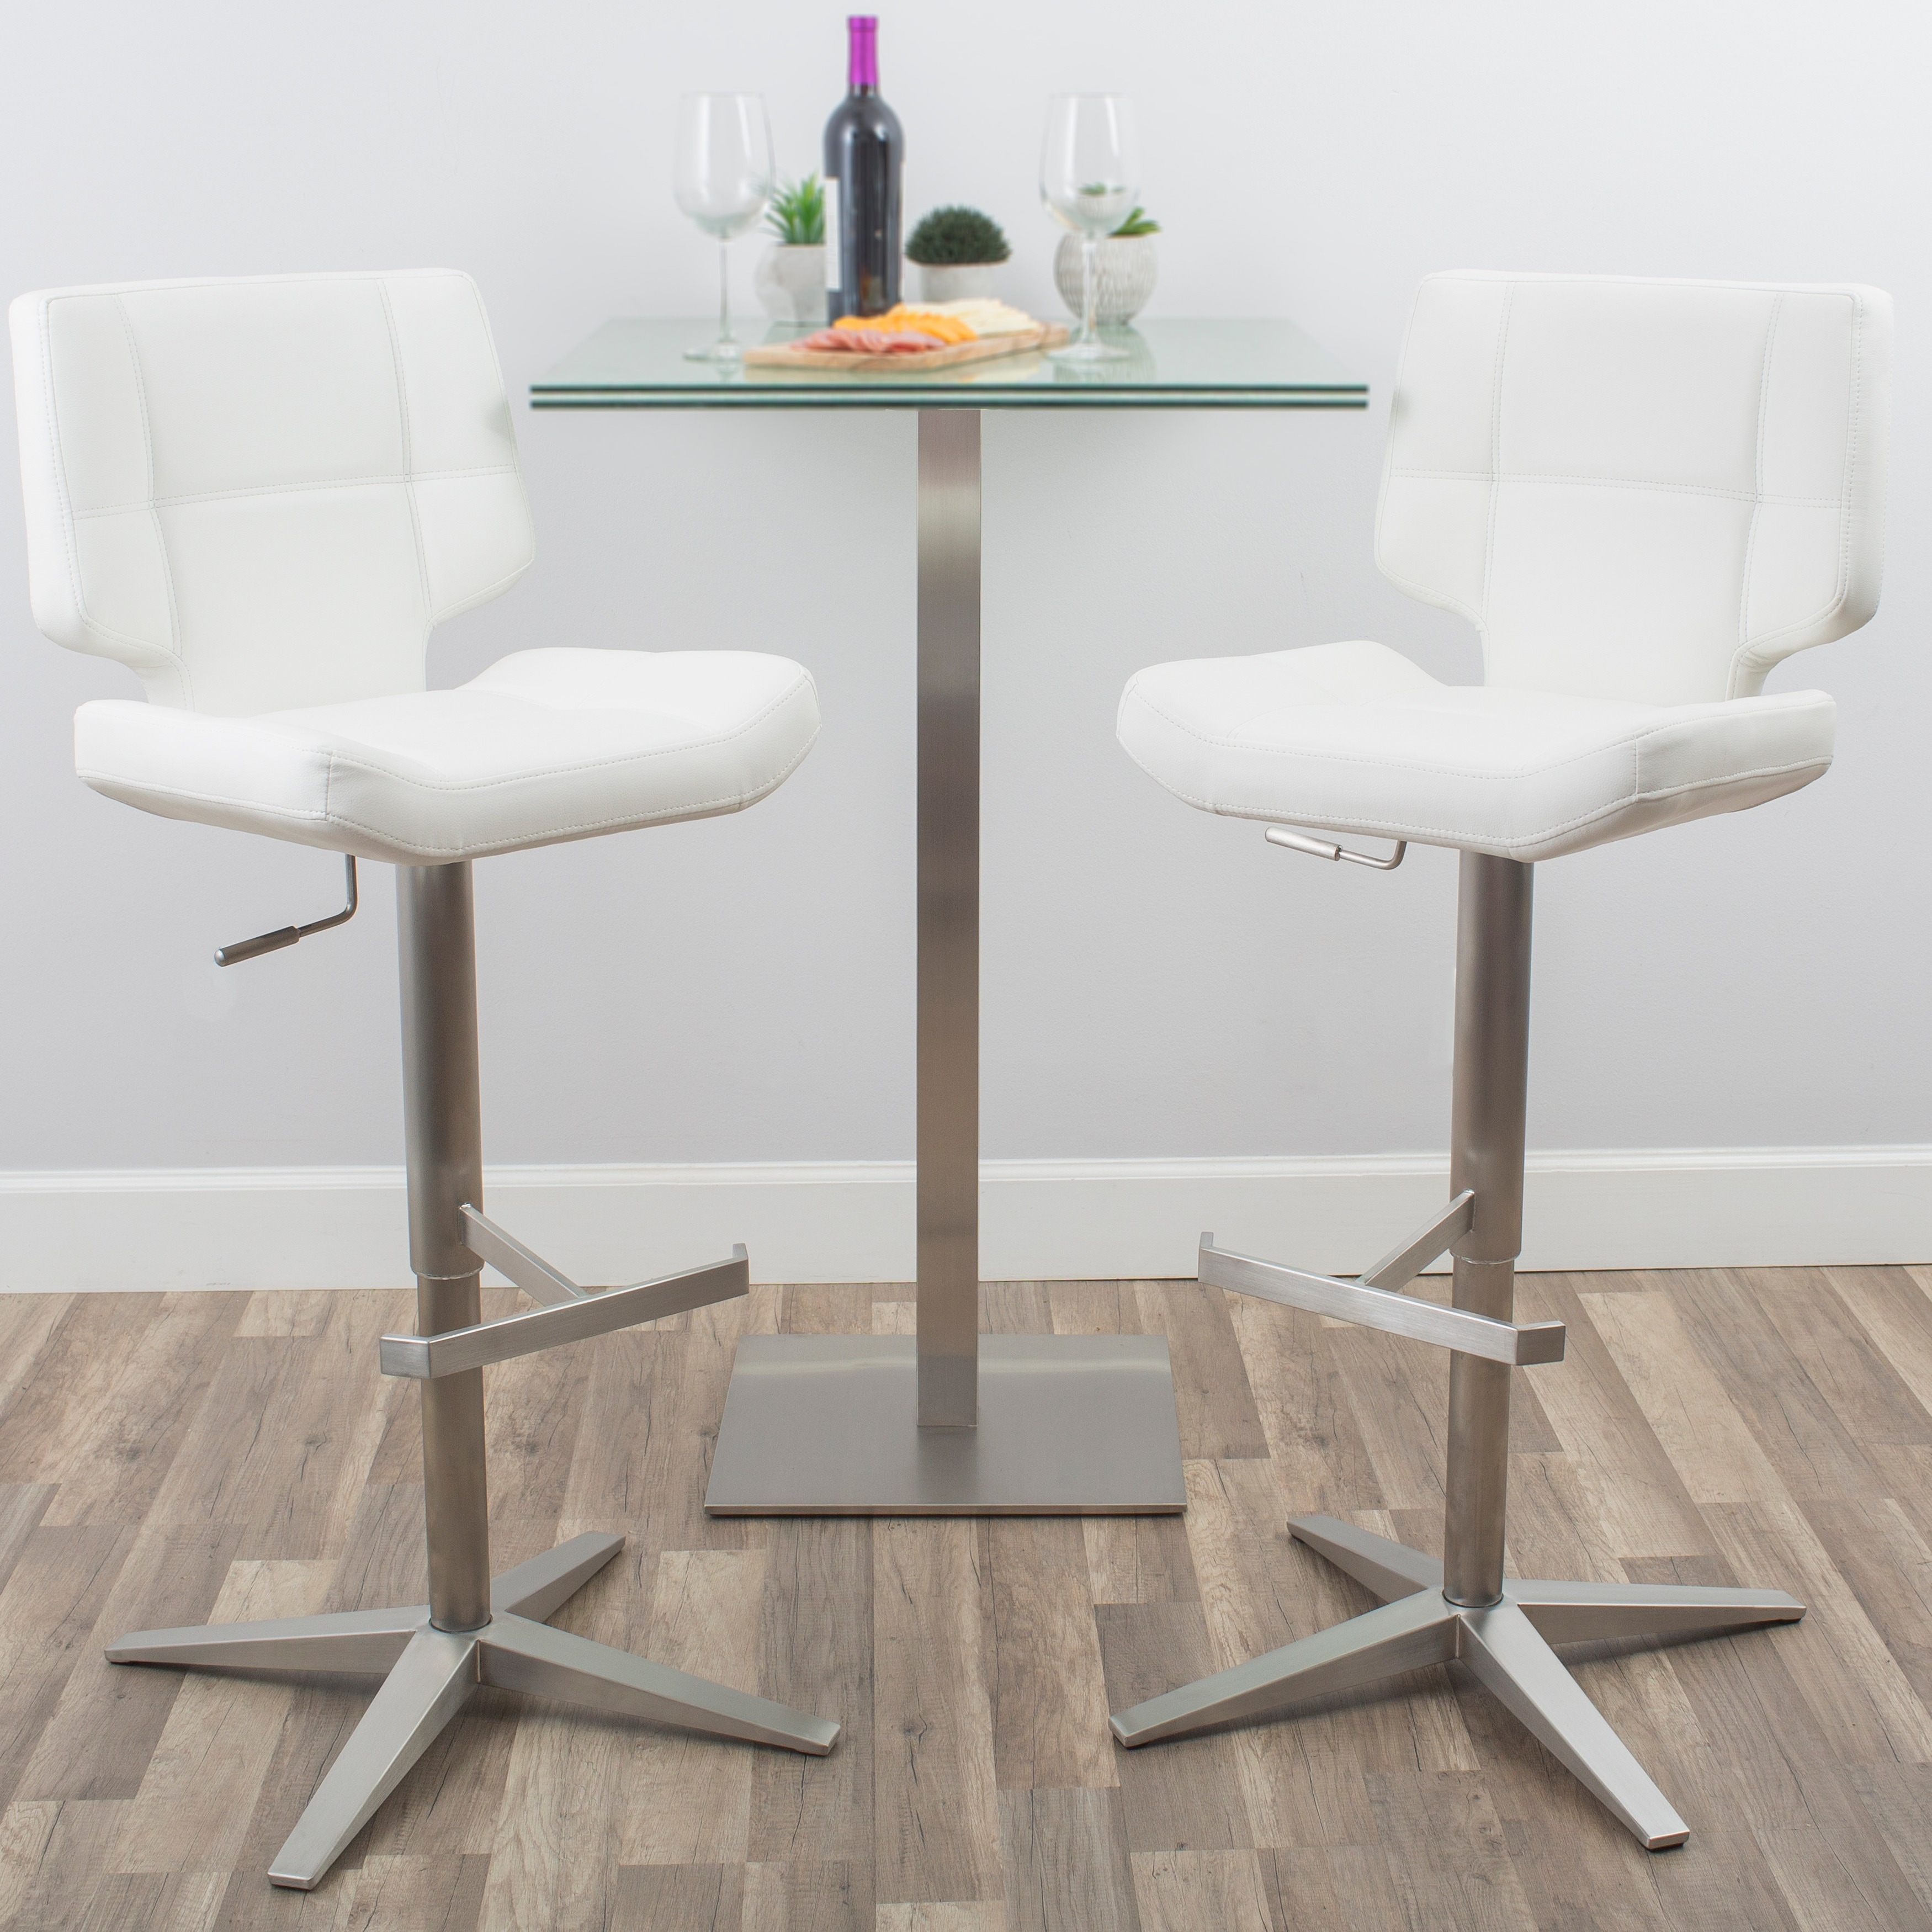 Shop MIX Brushed Stainless Steel X Base High-Back Adjustable Height ...